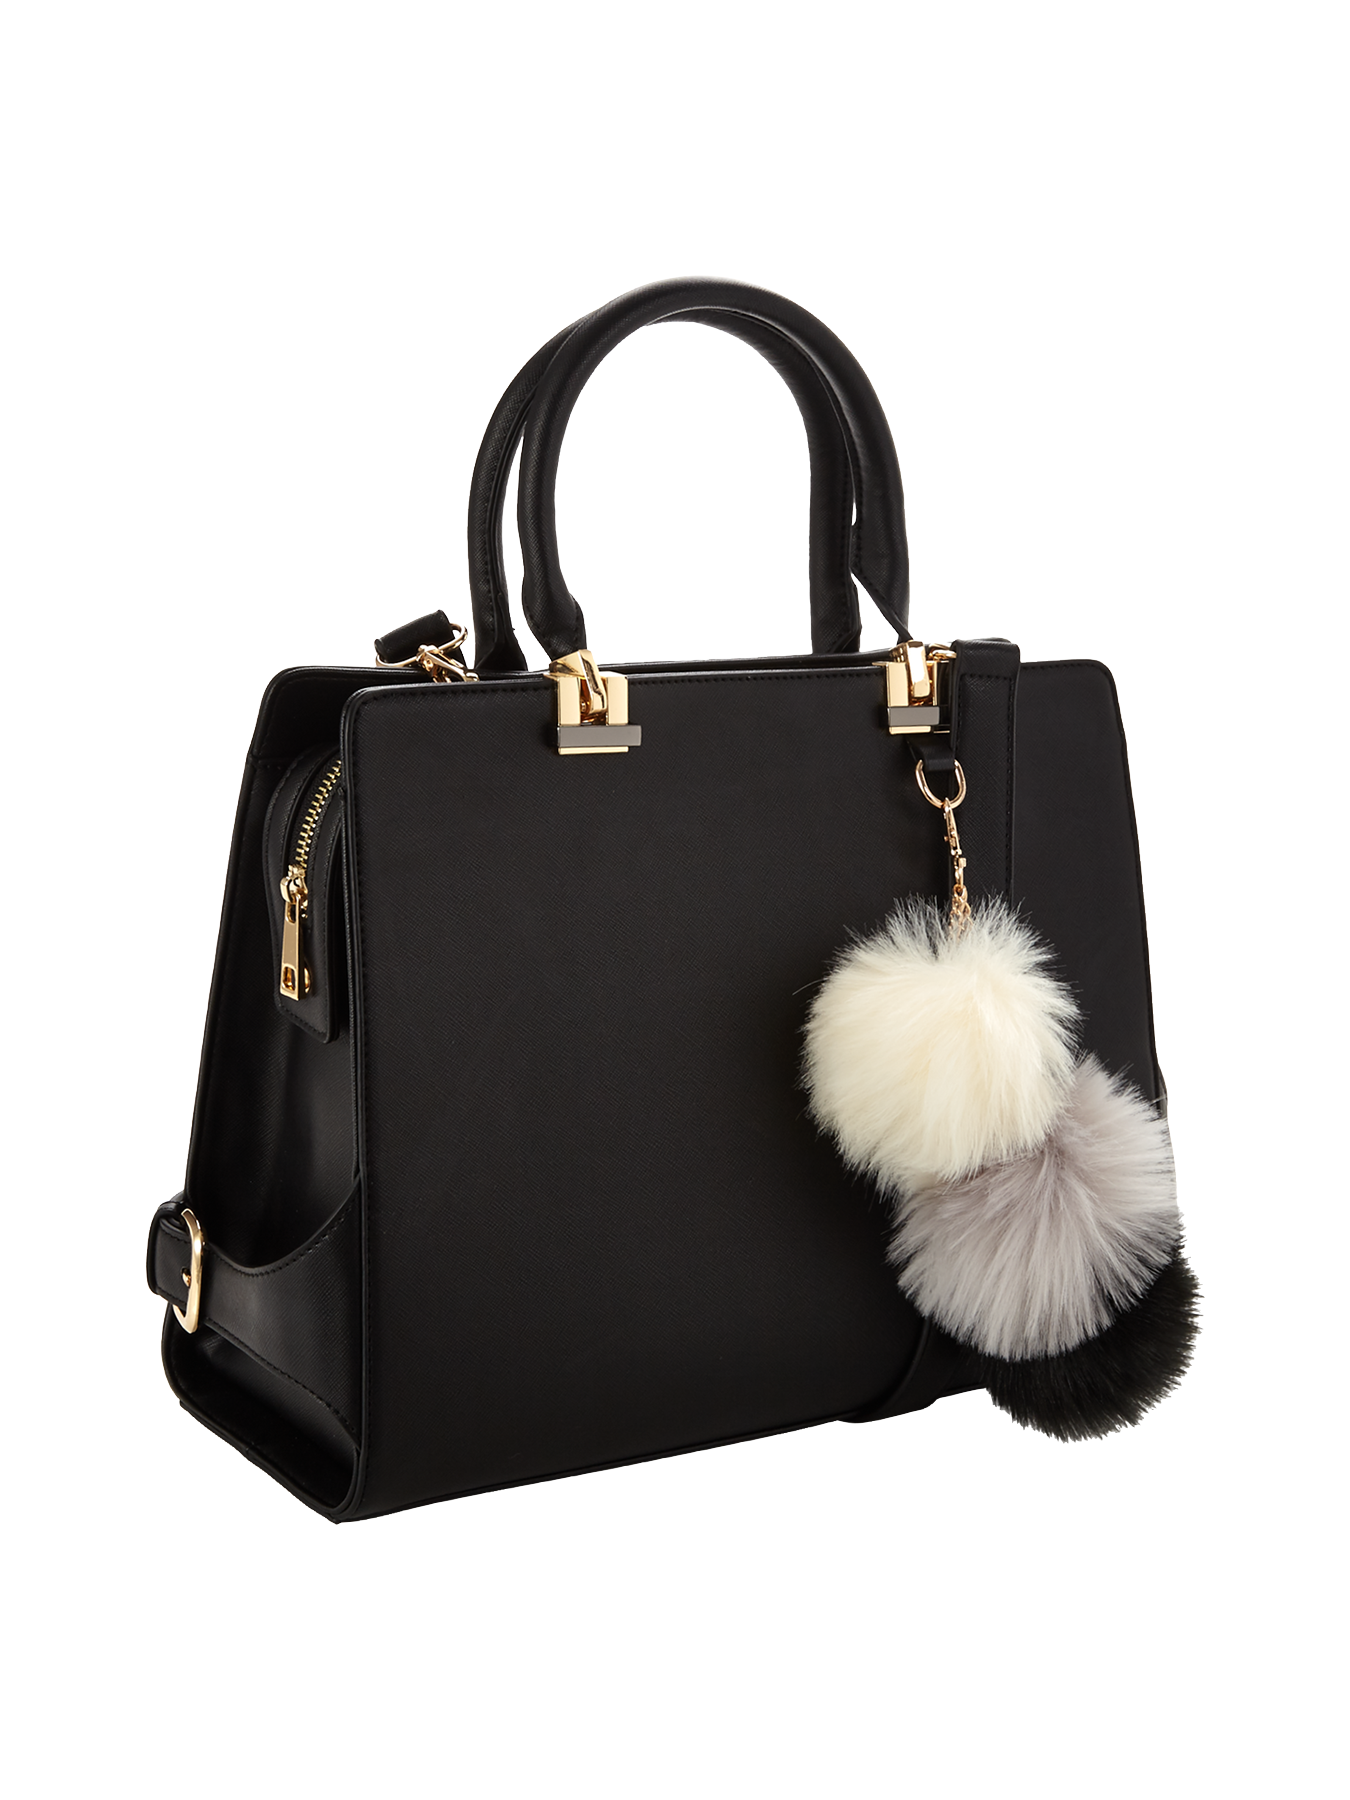 Large Tote Bag With Pom Pom Detail | The shoulder, Pom poms and Bags